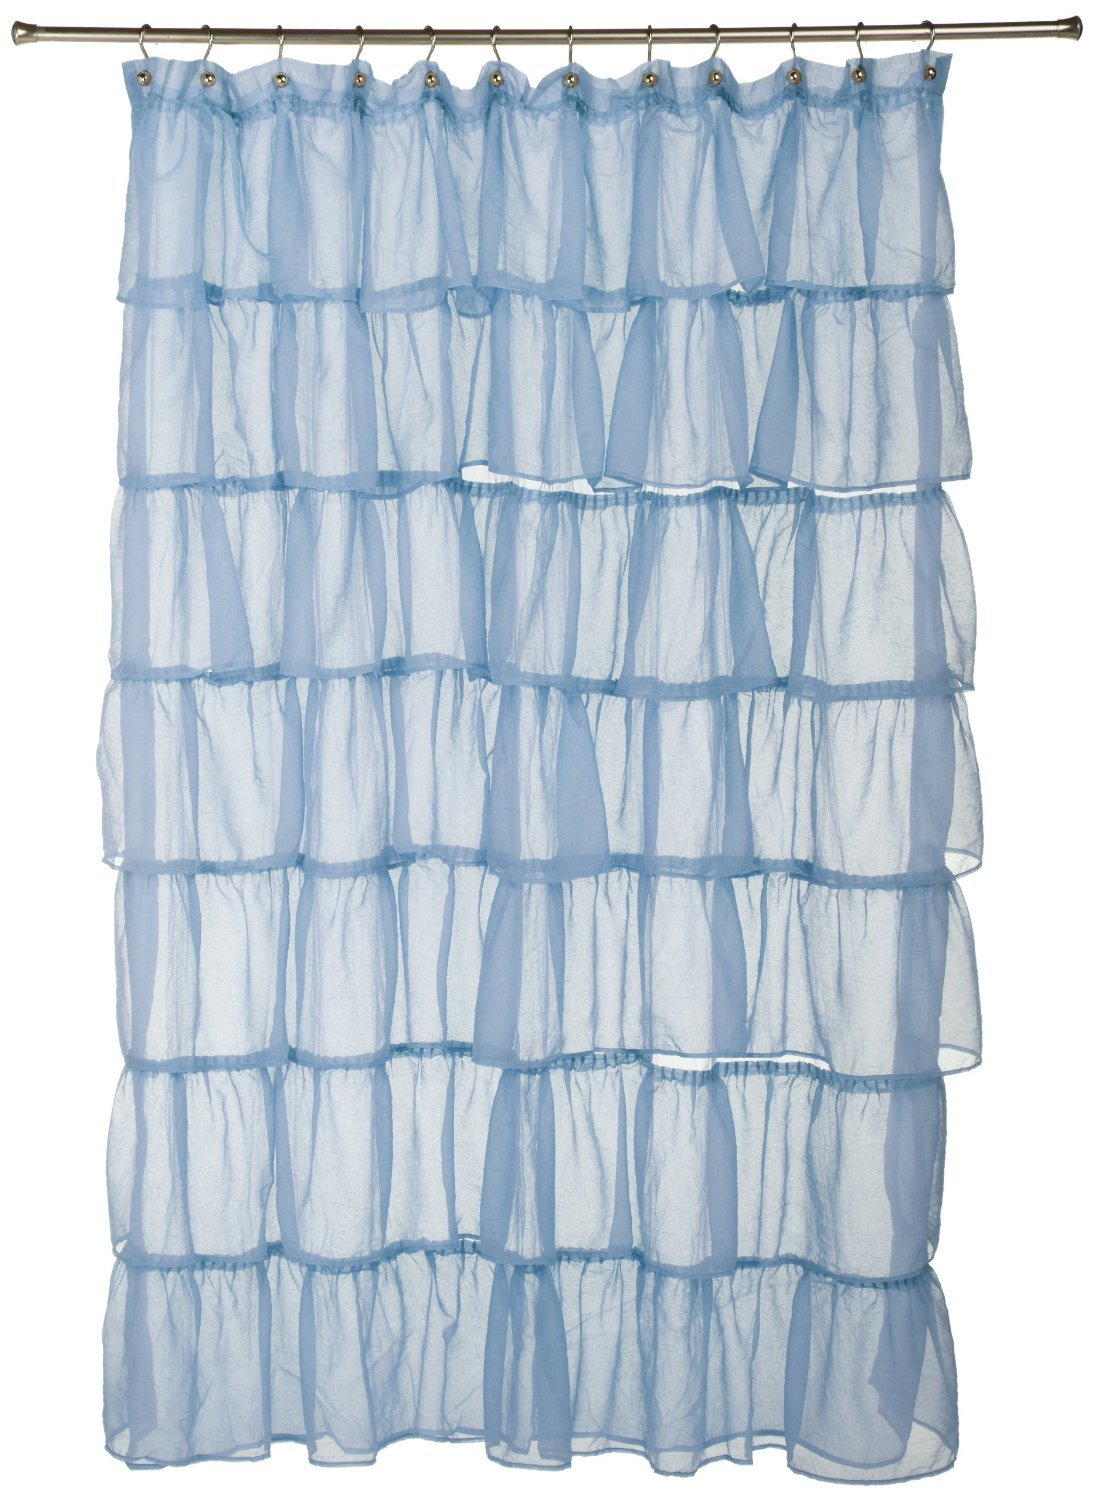 Amazon.com: Lorraine Home Fashions Gypsy Ruffled Shower Curtain ...